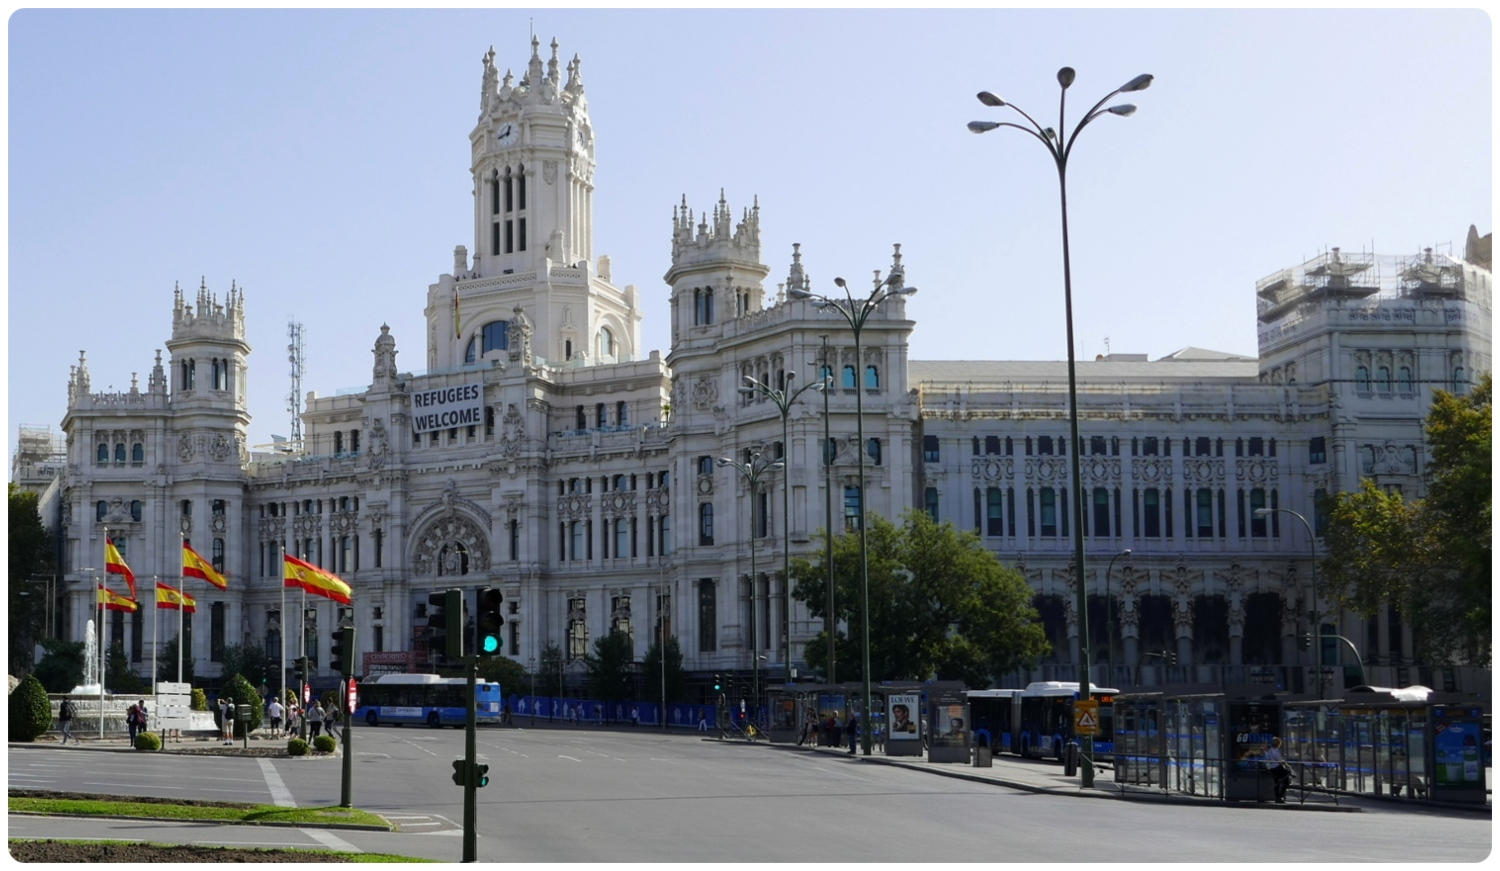 Plaza de Cibeles in Madrid, Spain.